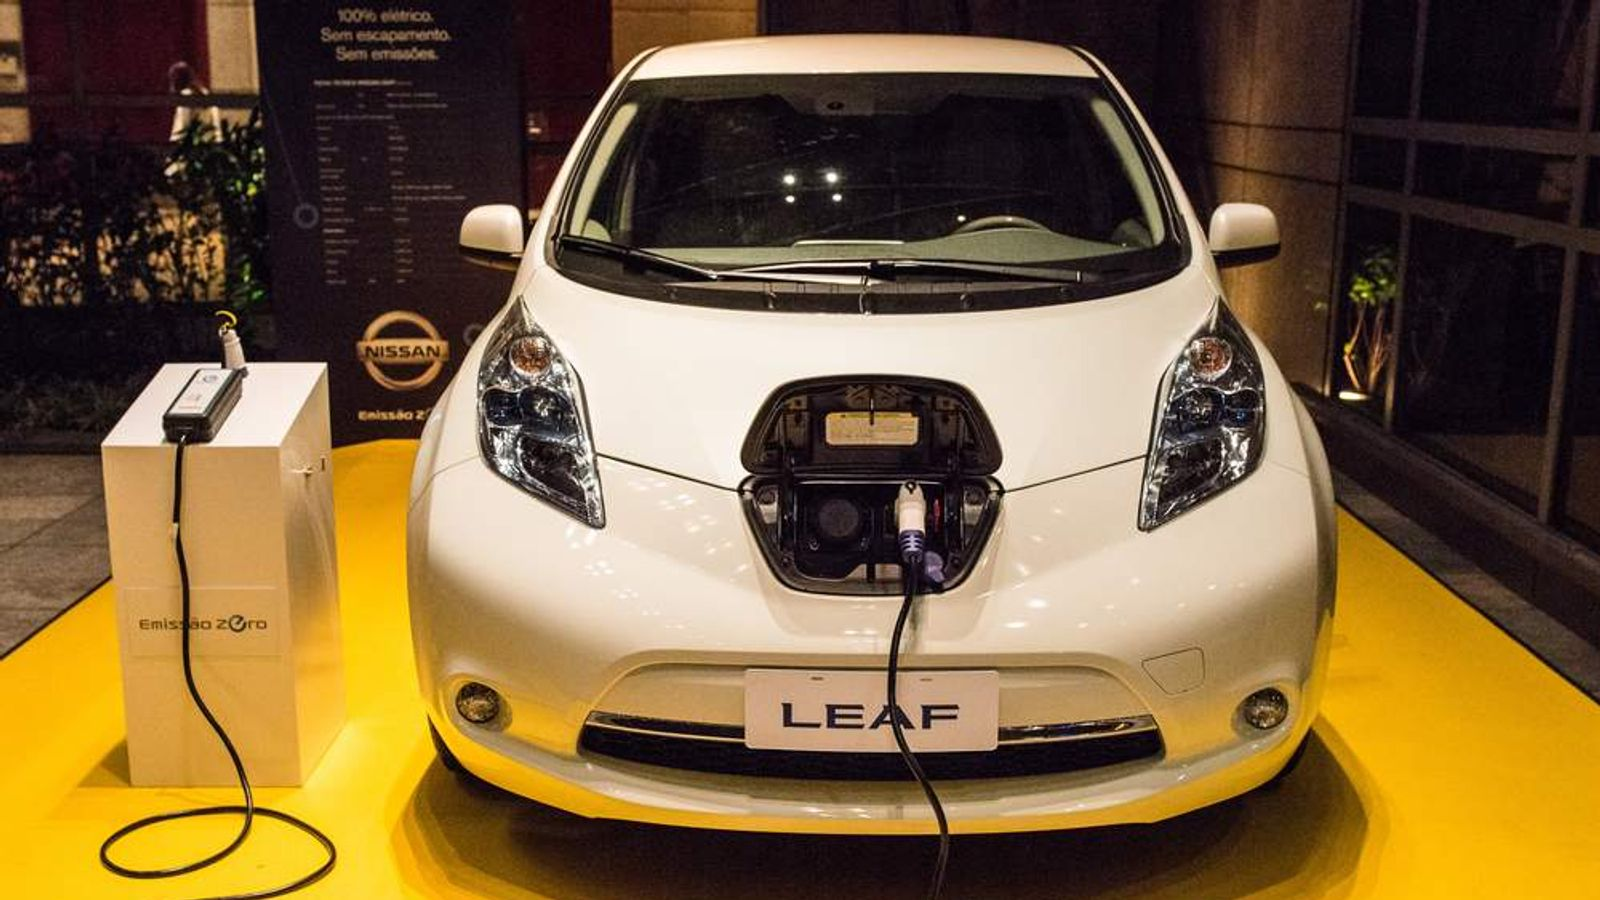 Nissan Leaf Electric Car zero emission vehicle